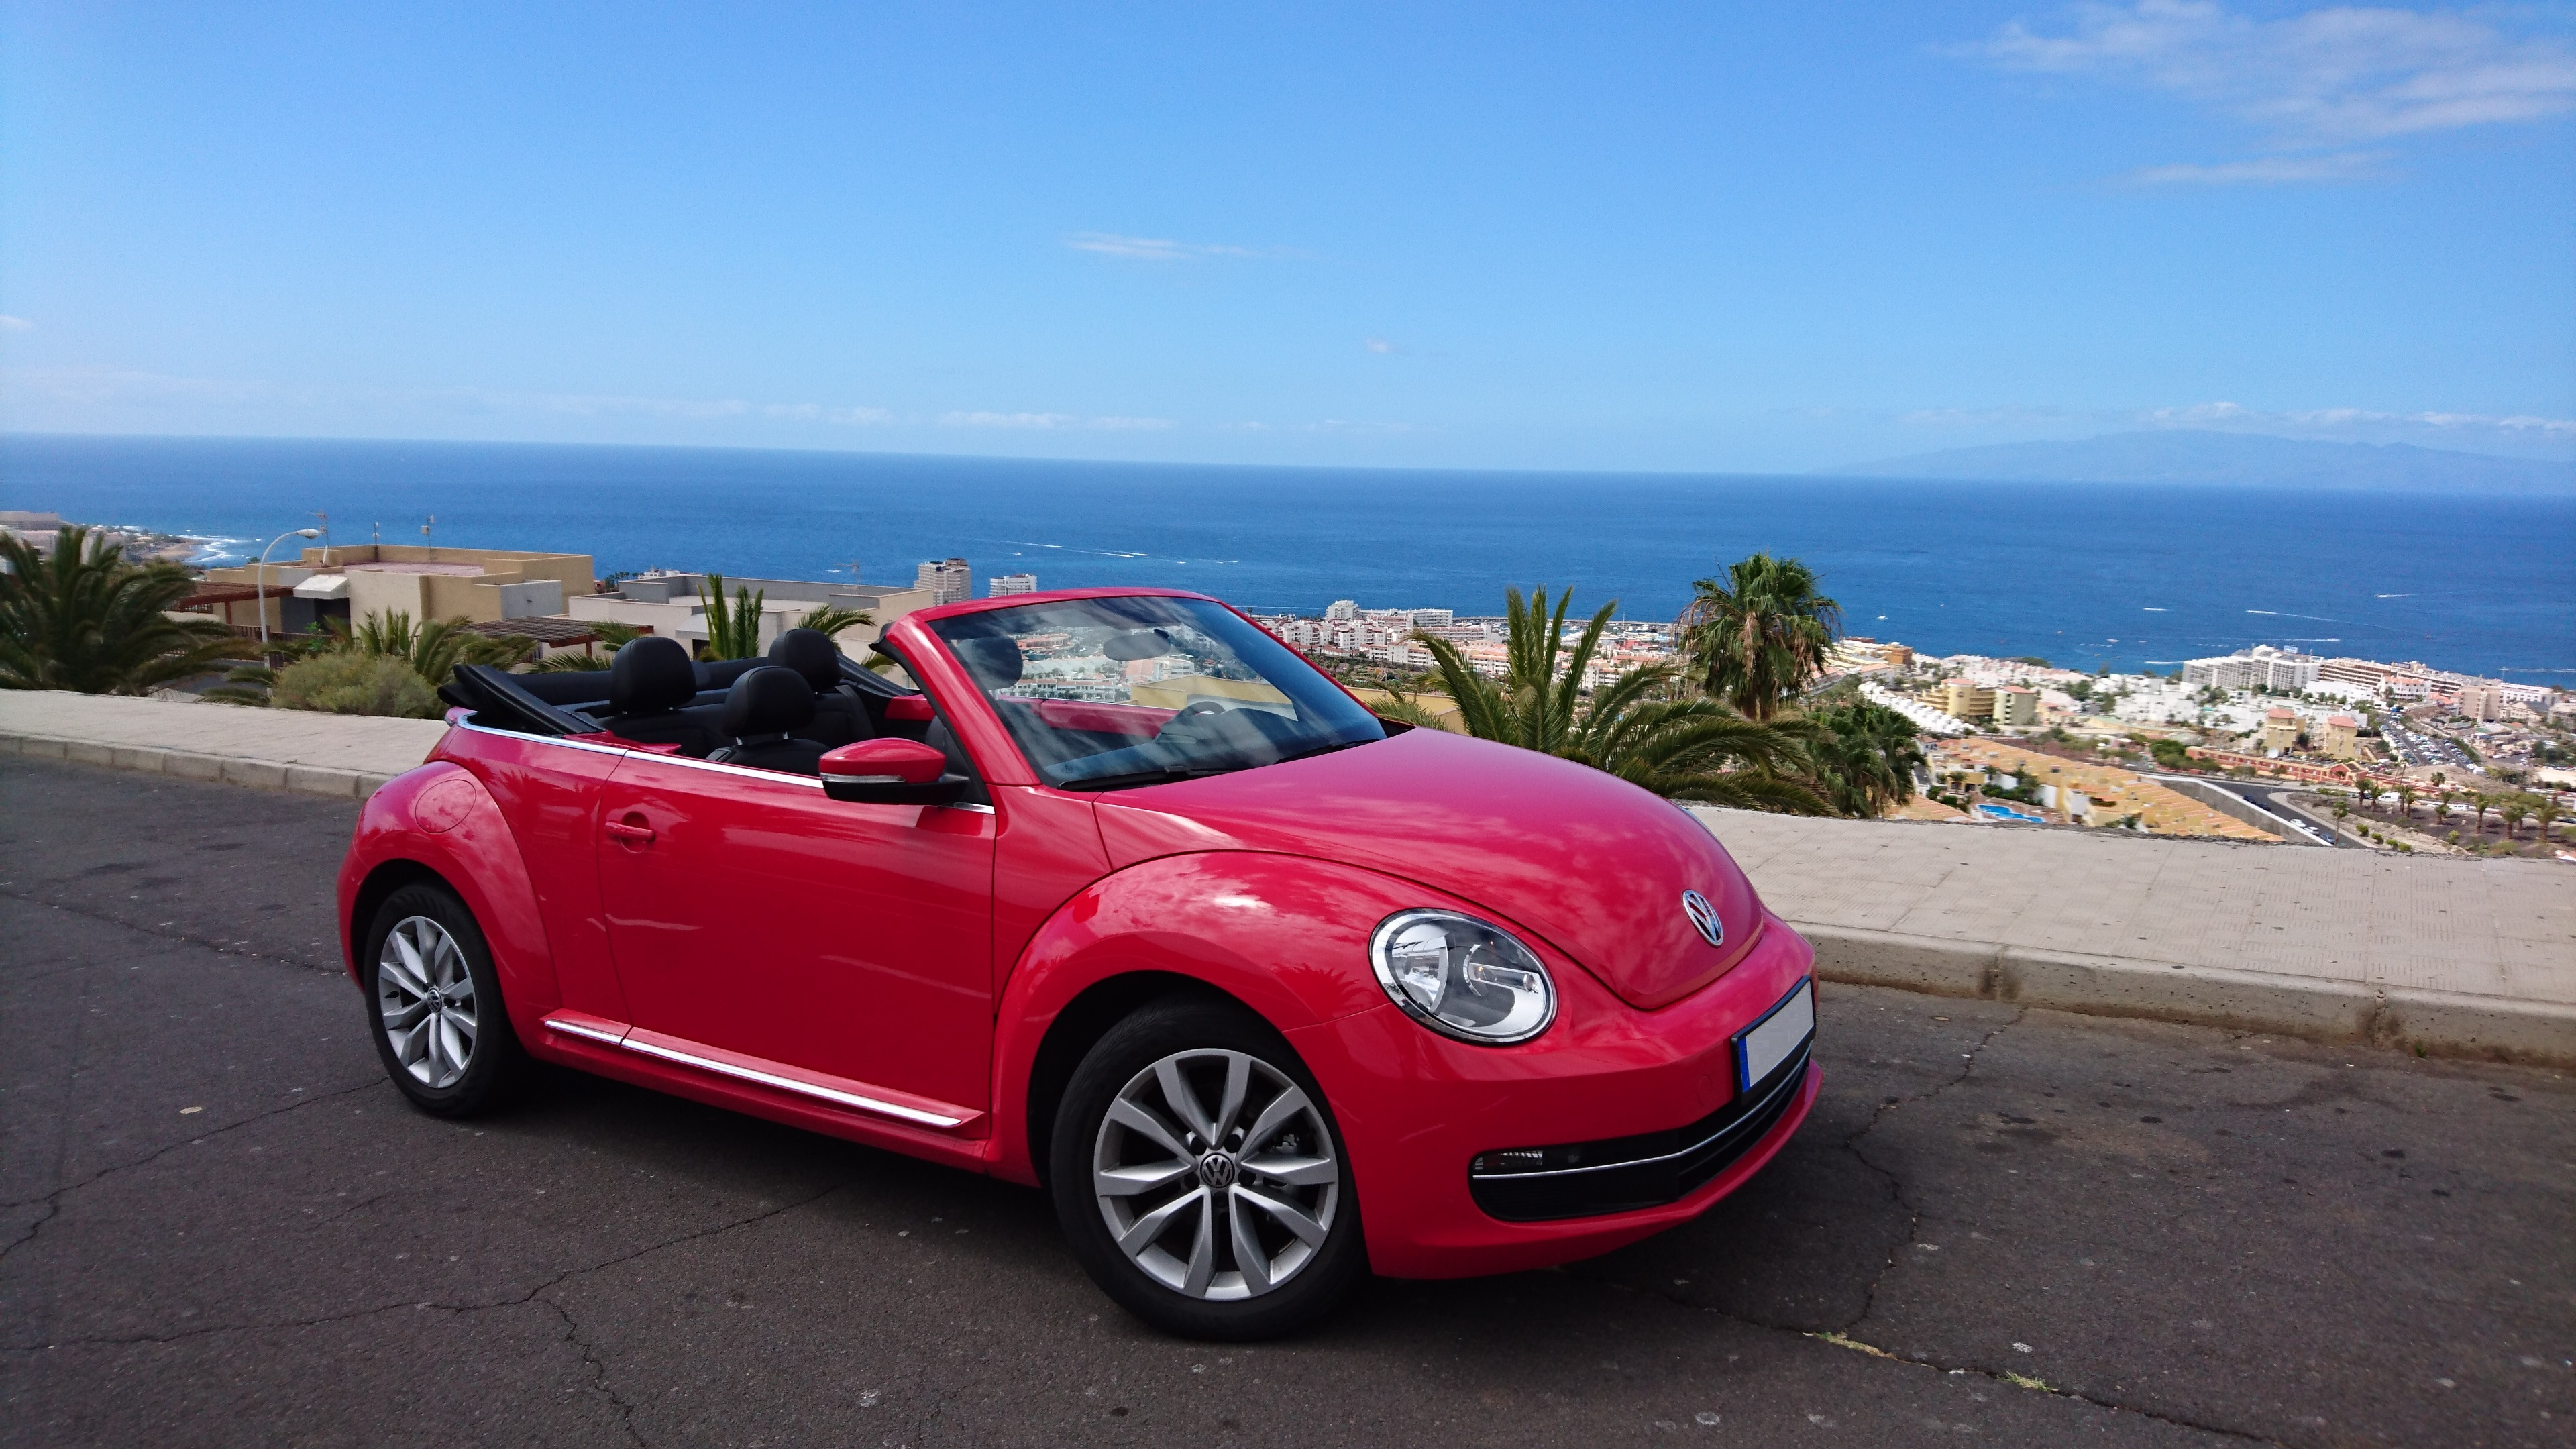 vw beetle cabrio red tenerife sports cars rent. Black Bedroom Furniture Sets. Home Design Ideas